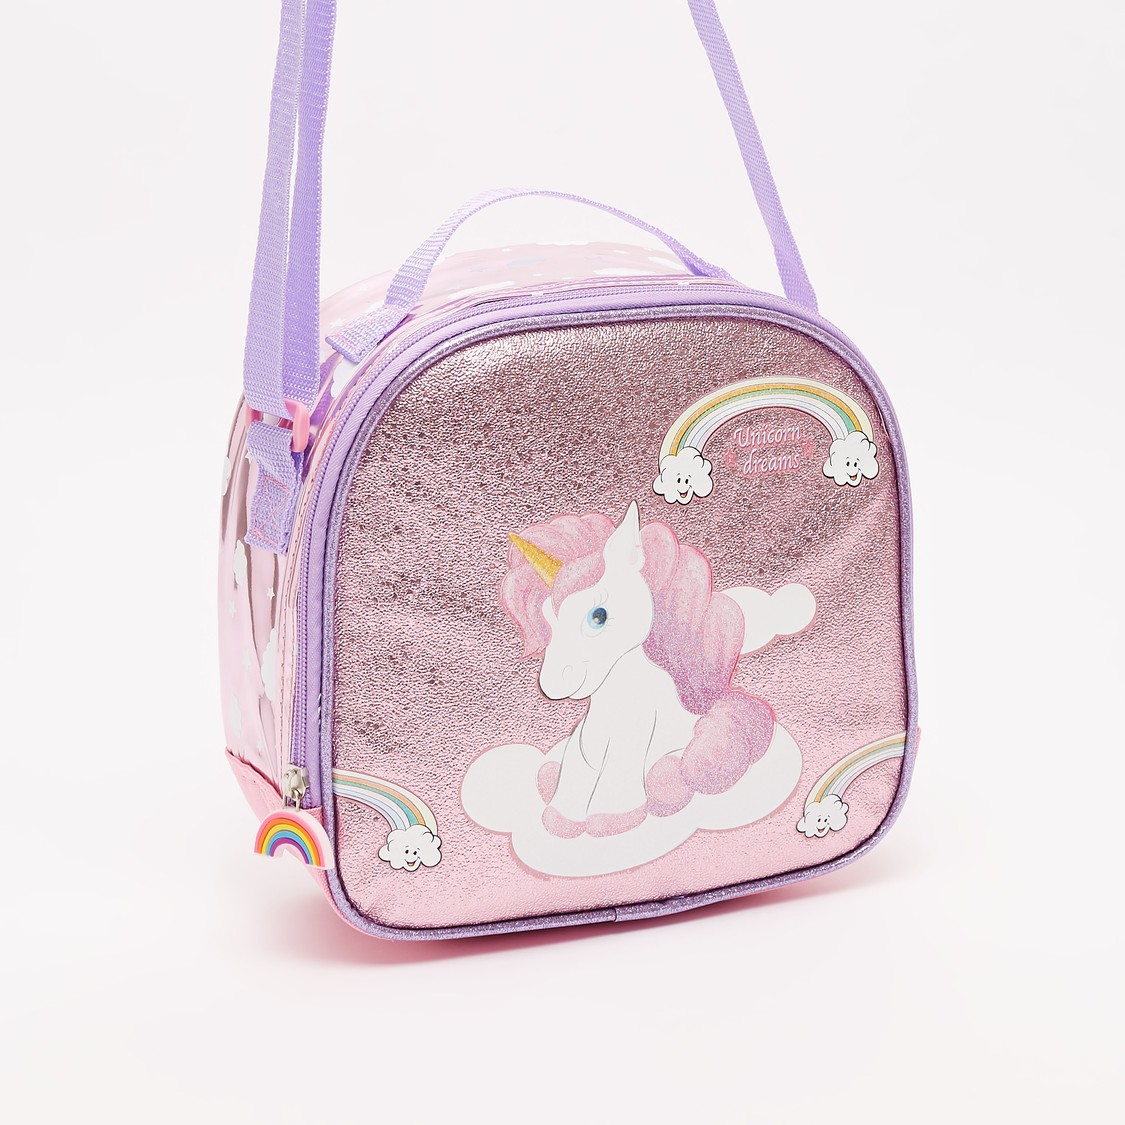 Unicorn Print Lunch Bag with Adjustable Strap and Zip Closure